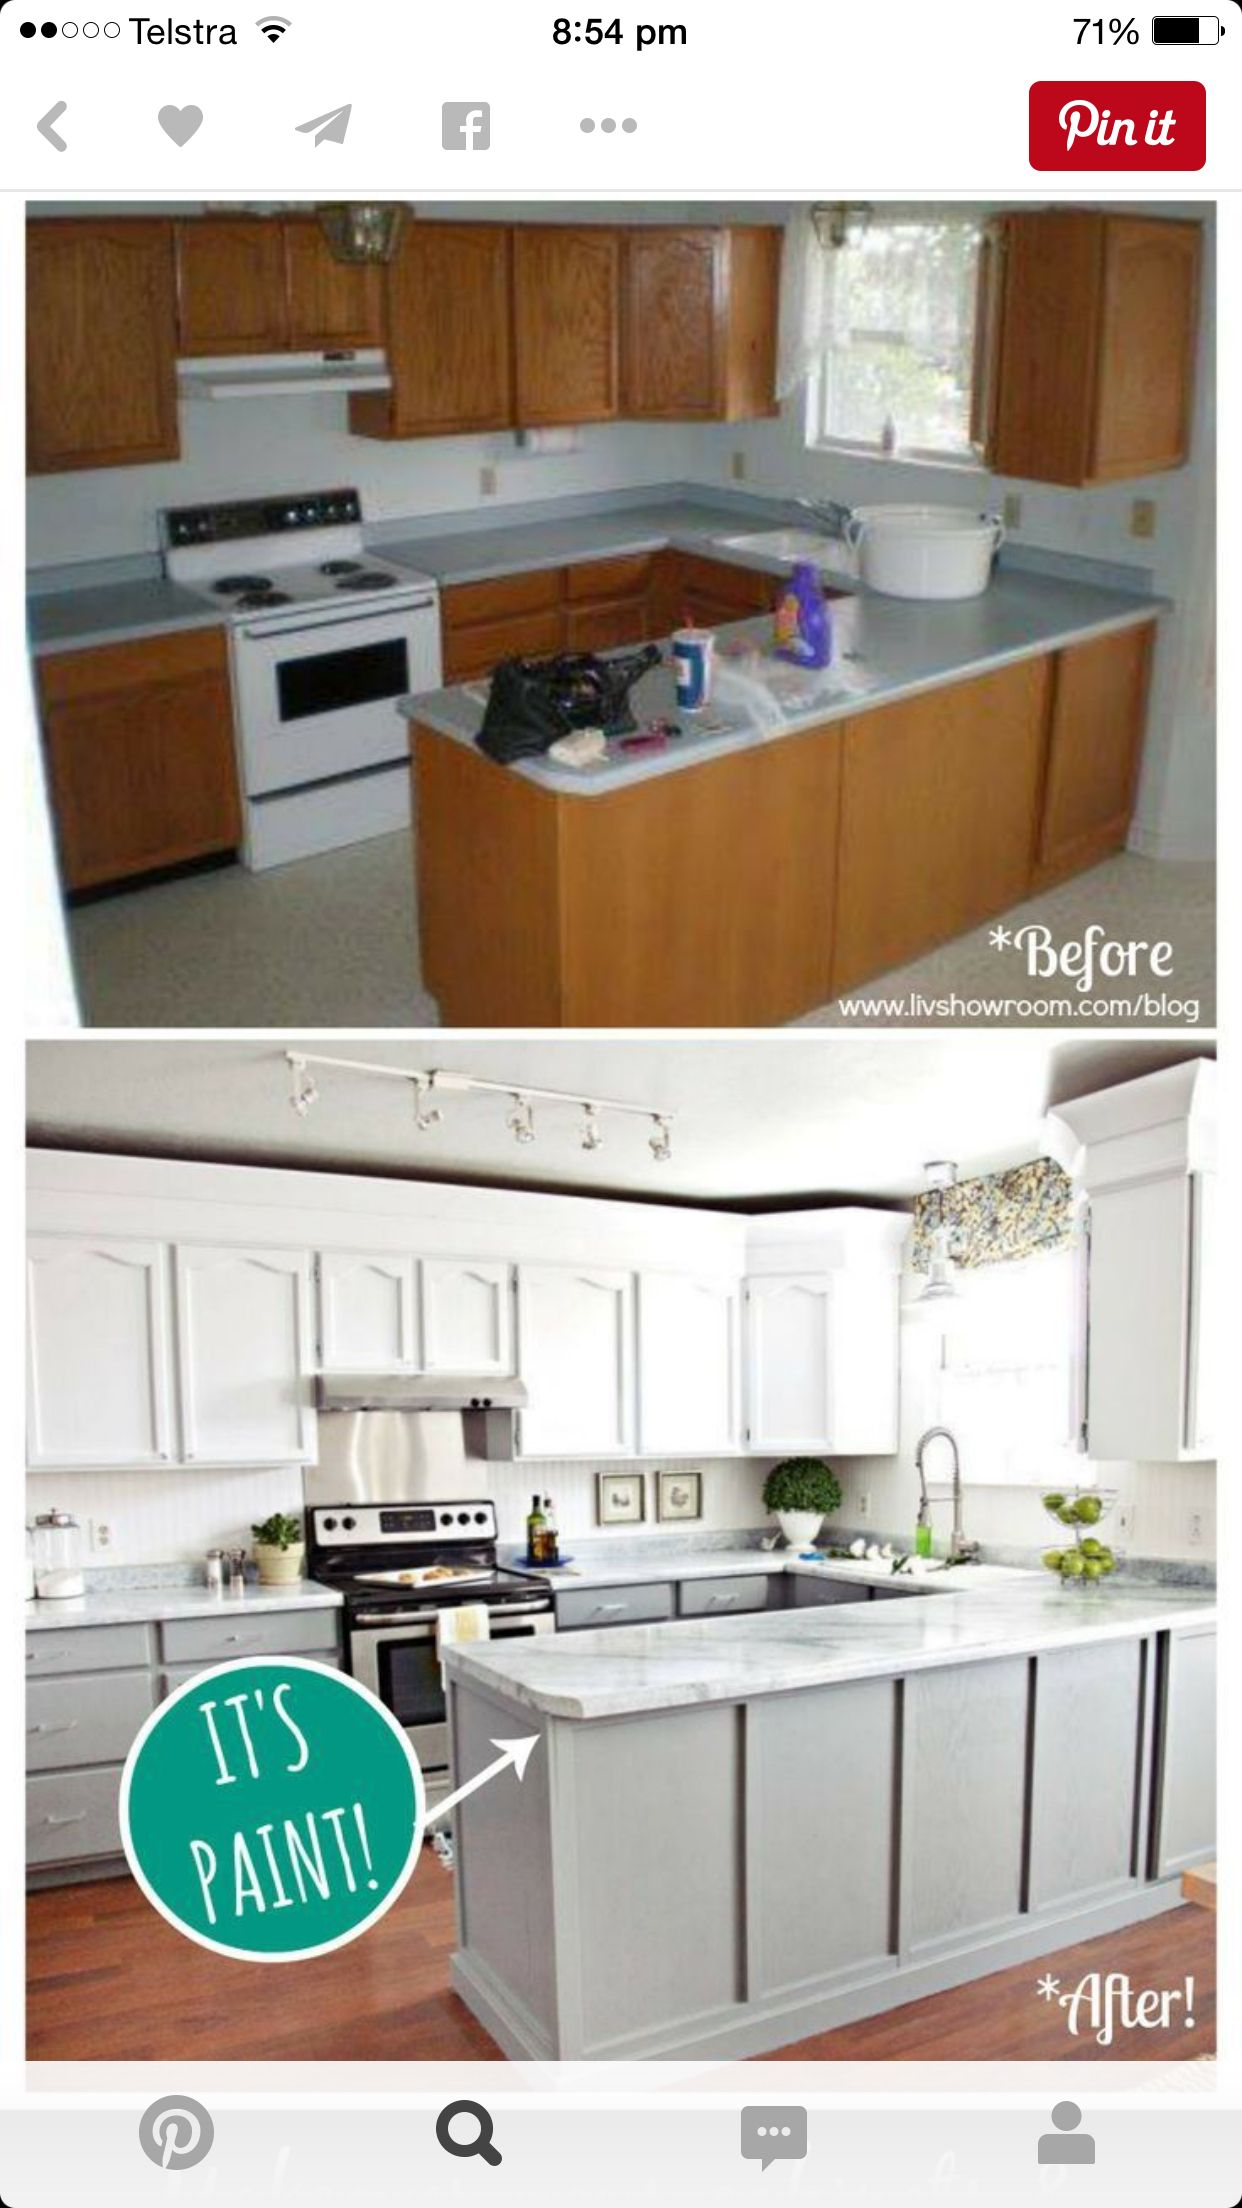 cheap reno on kitchen - layout is the key I think to be able to ...